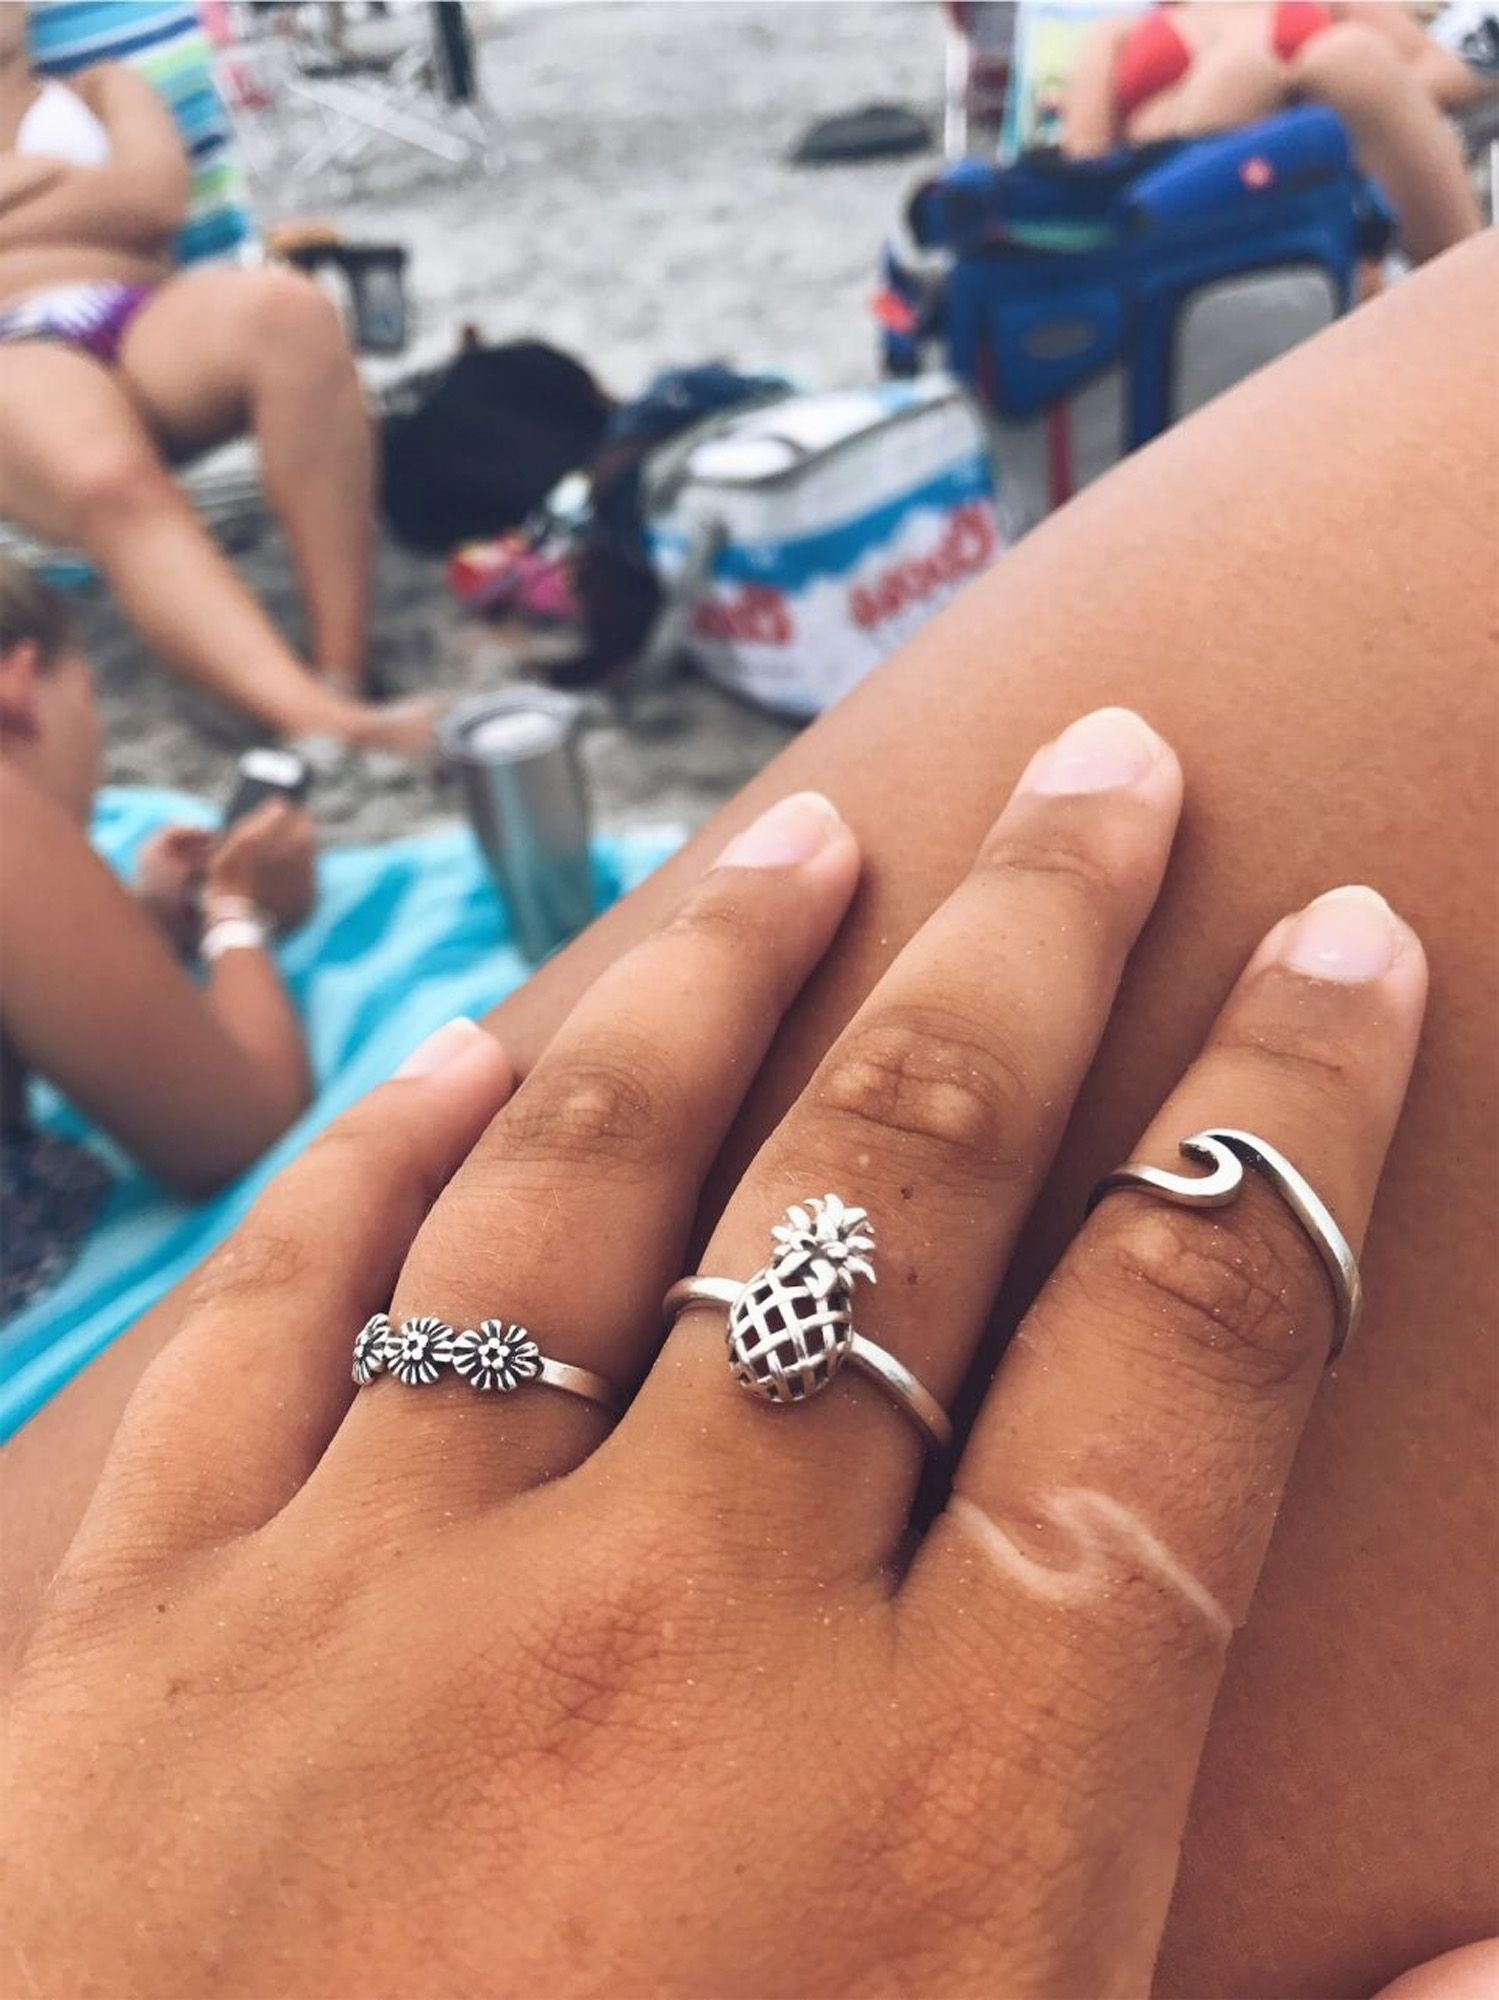 5f8f26fa2 Cute Simple Surf Wave Dainty Ring Fashion Jewelry for Teens Boho Women's  Stackable Silver Rose Gold Ring (www.Jewolite.com) #rings